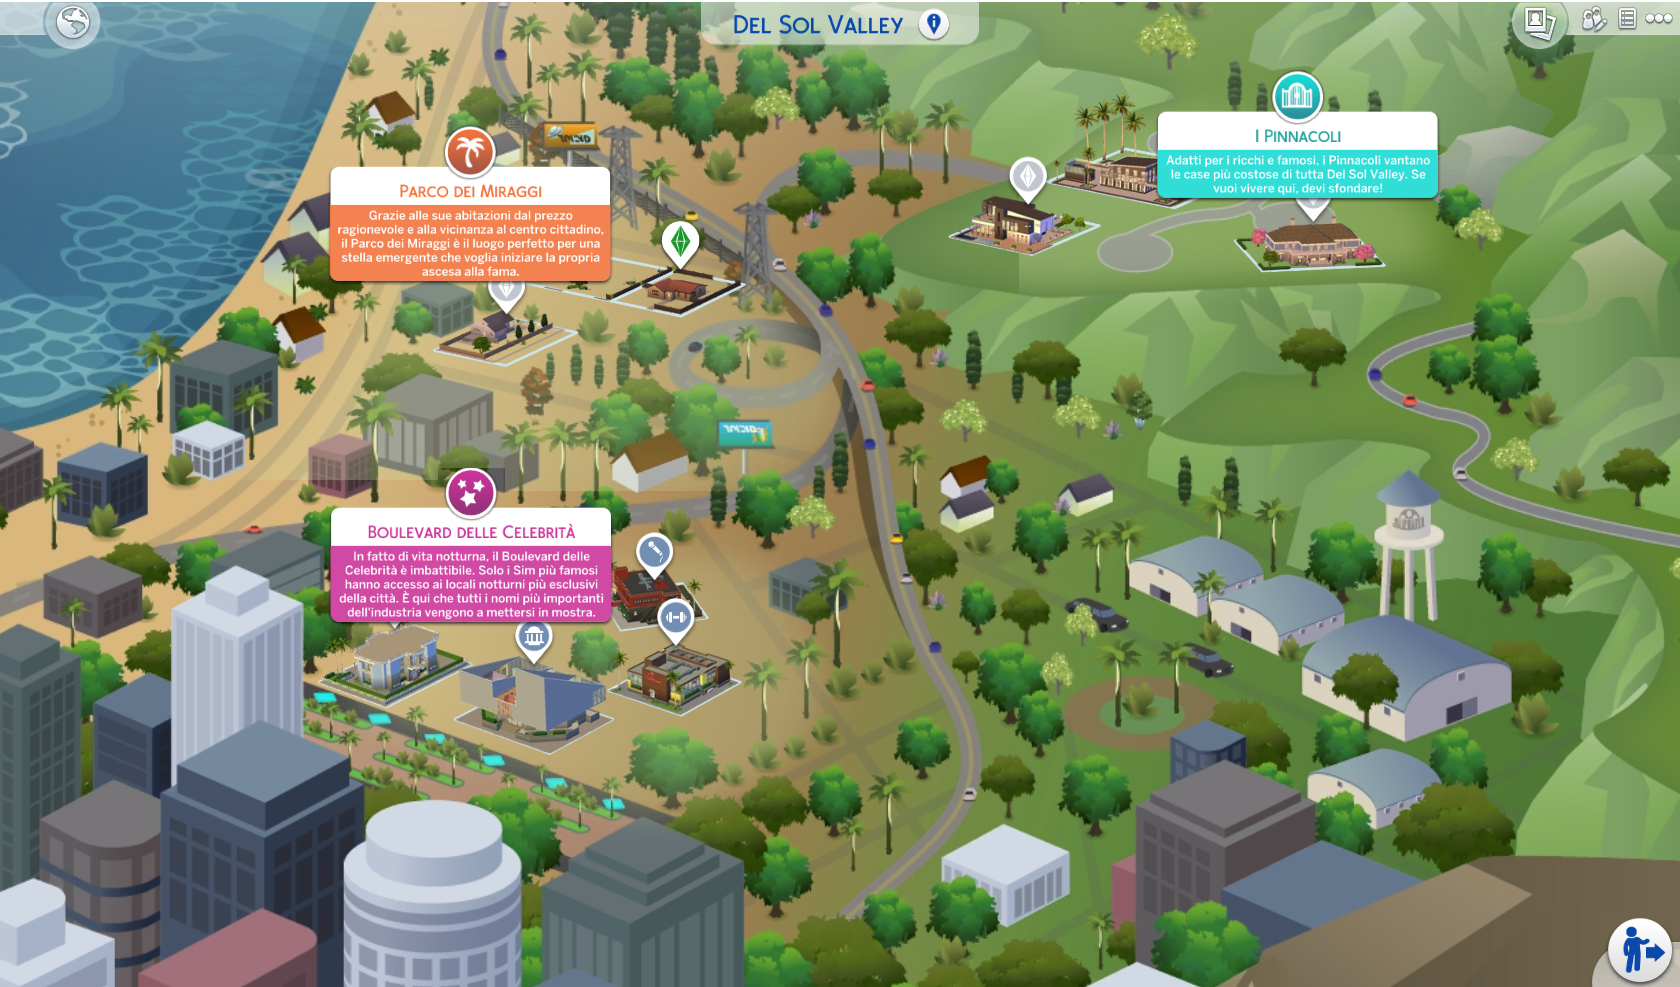 The Sims 4 Nuove Stelle Del Sol Valley Map